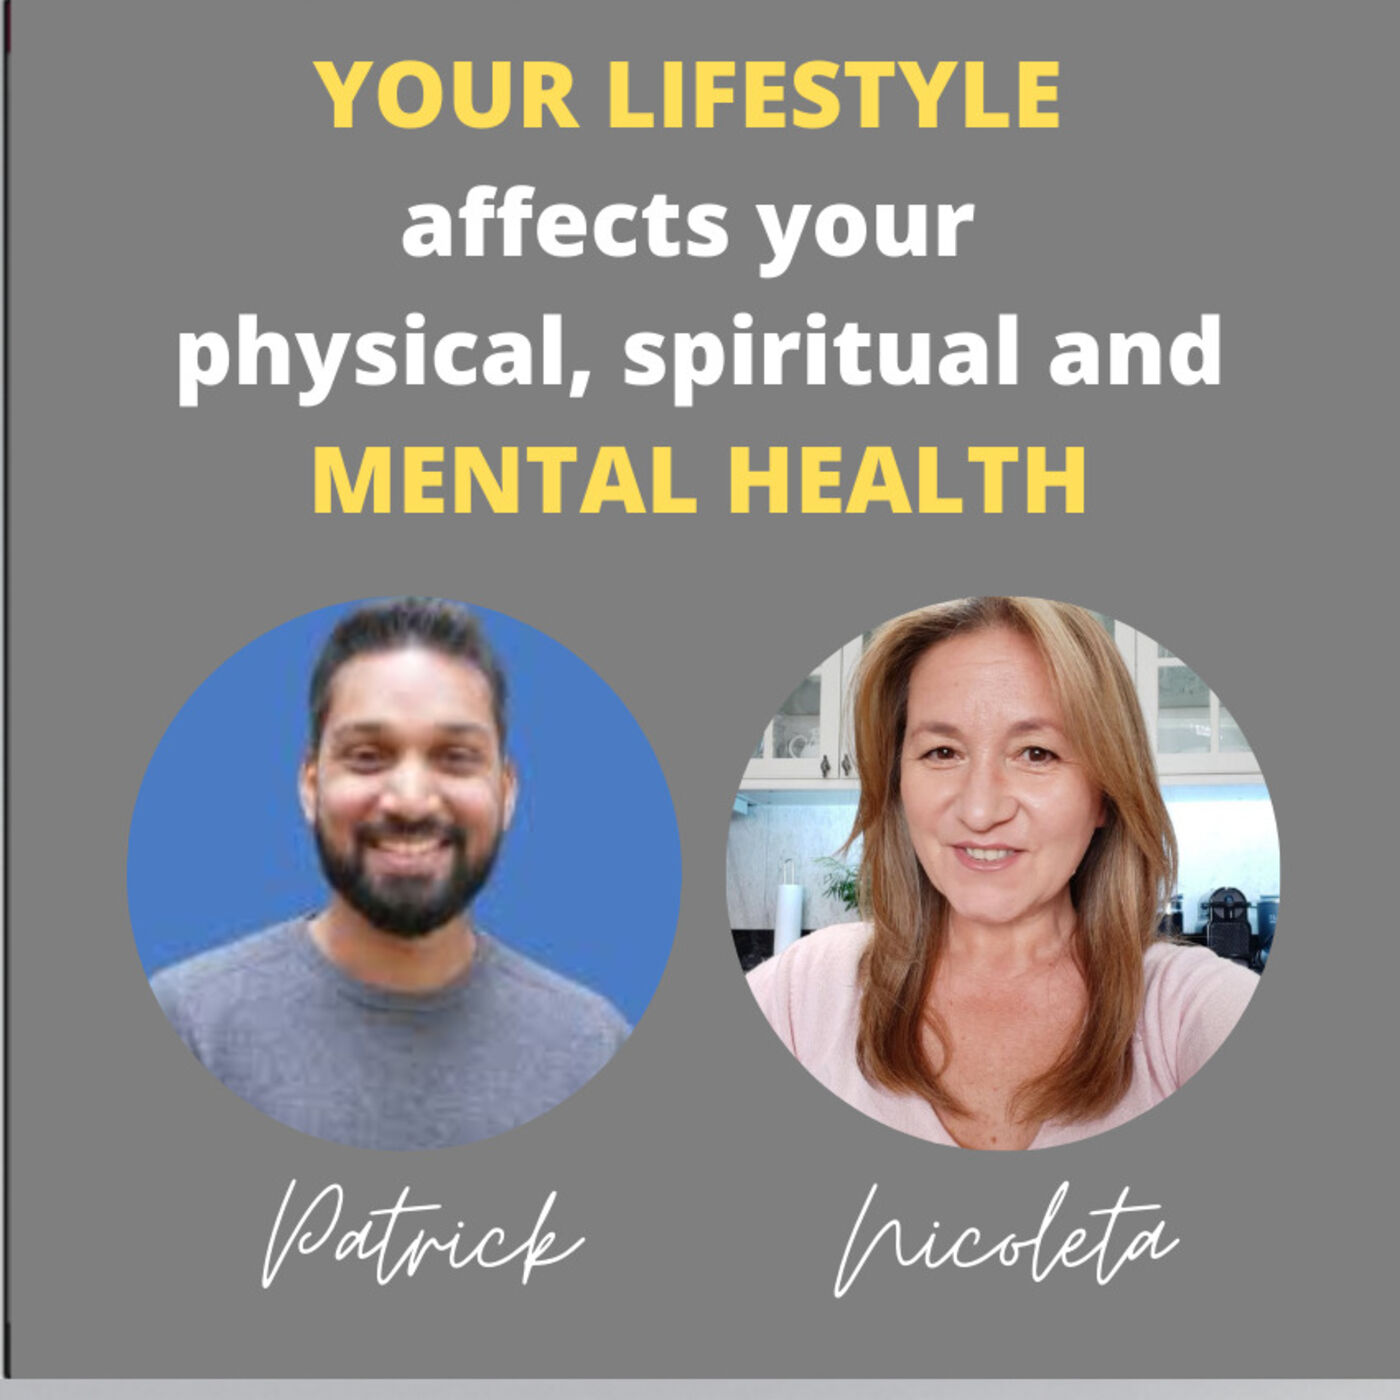 12 - When your lifestyle affects your physical, spiritual and mental health